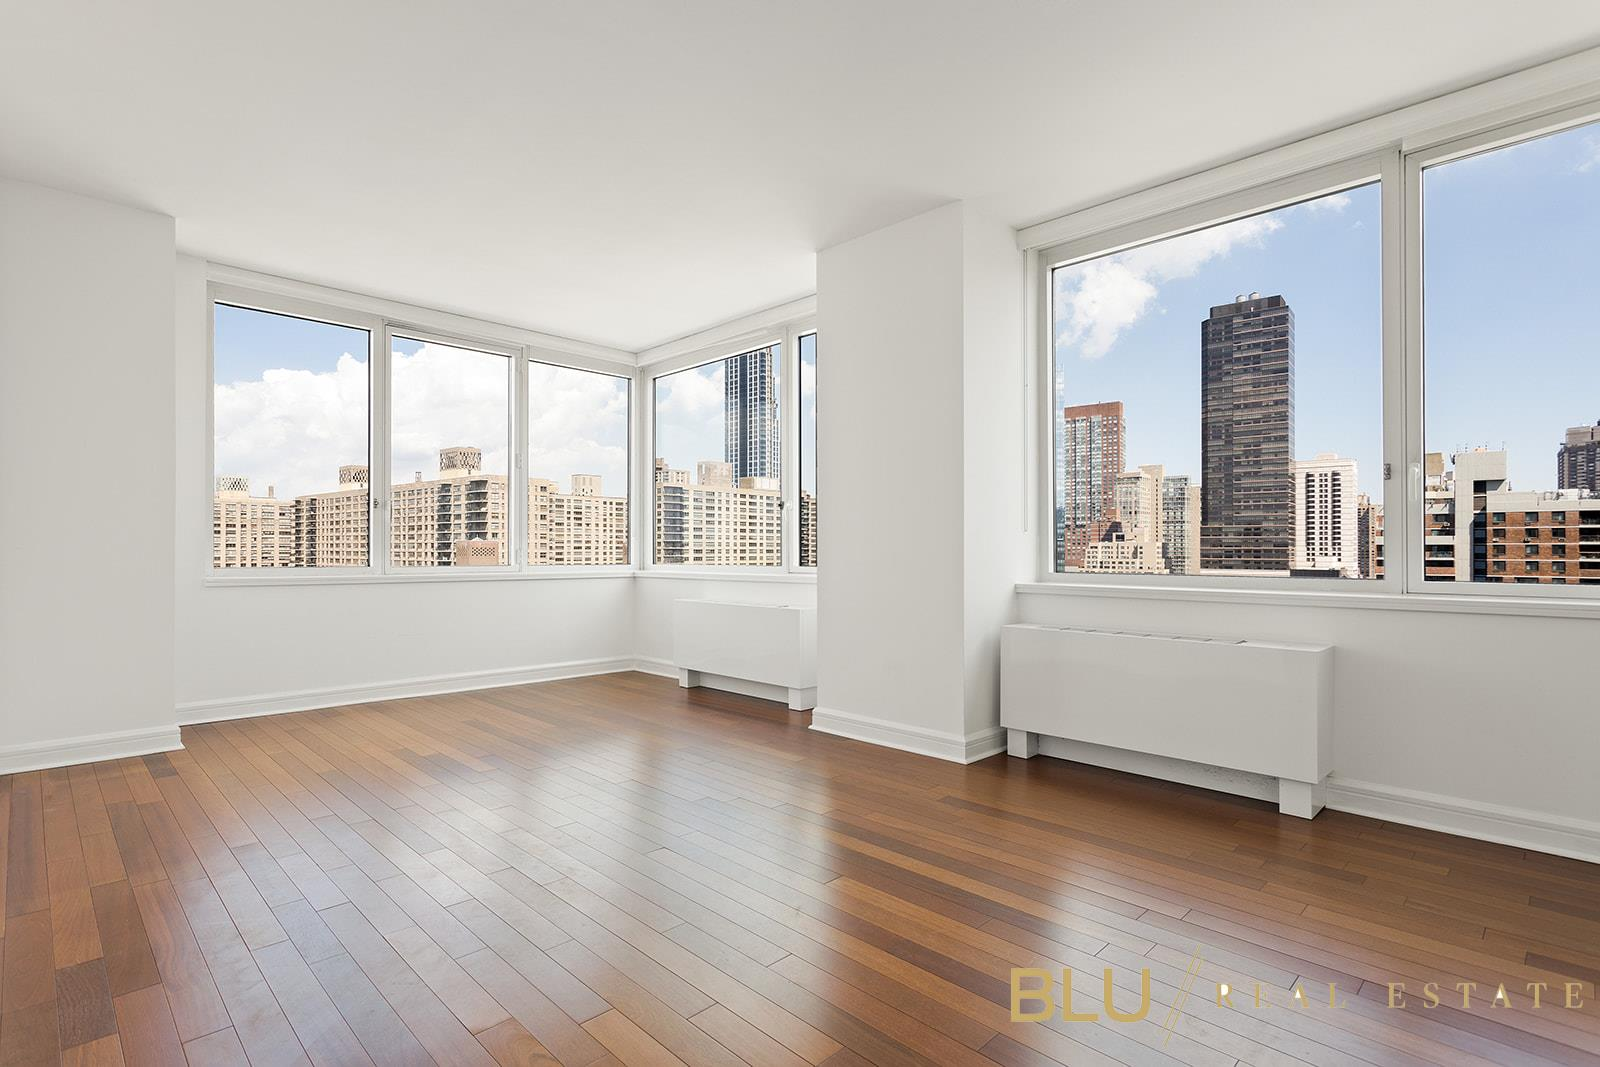 Apartment for sale at 100 Riverside Boulevard, Apt 23-A